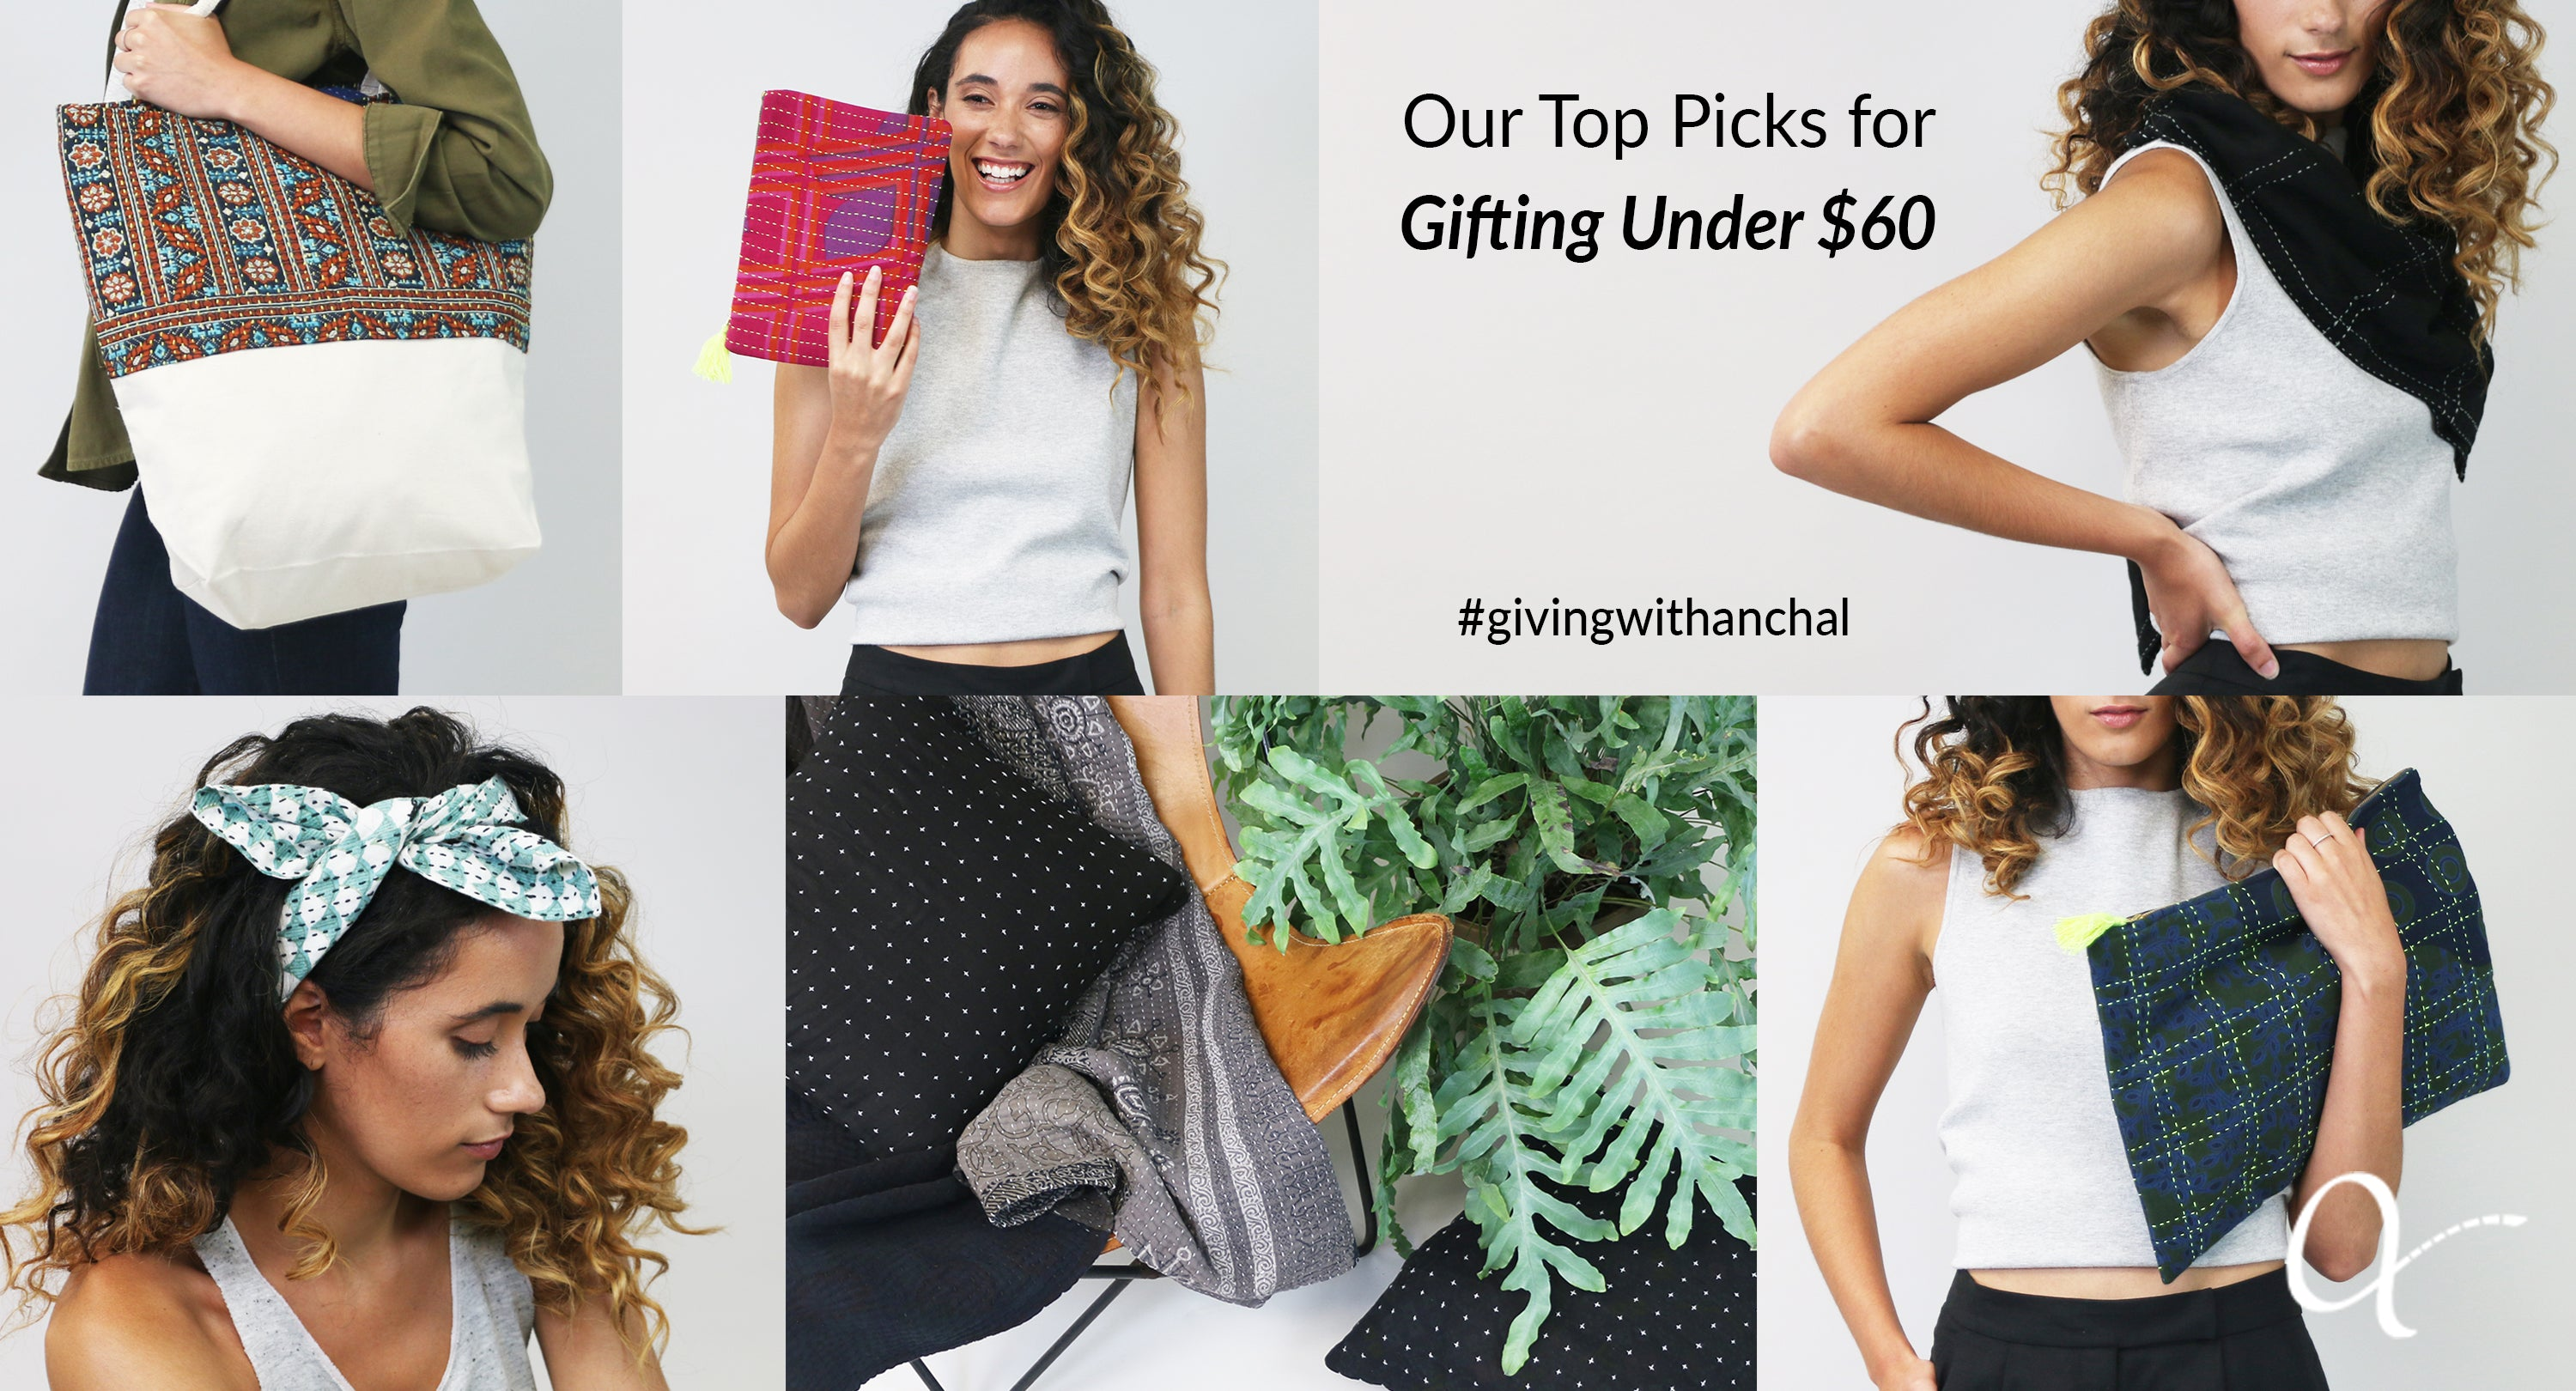 Gifts that give back, under $60